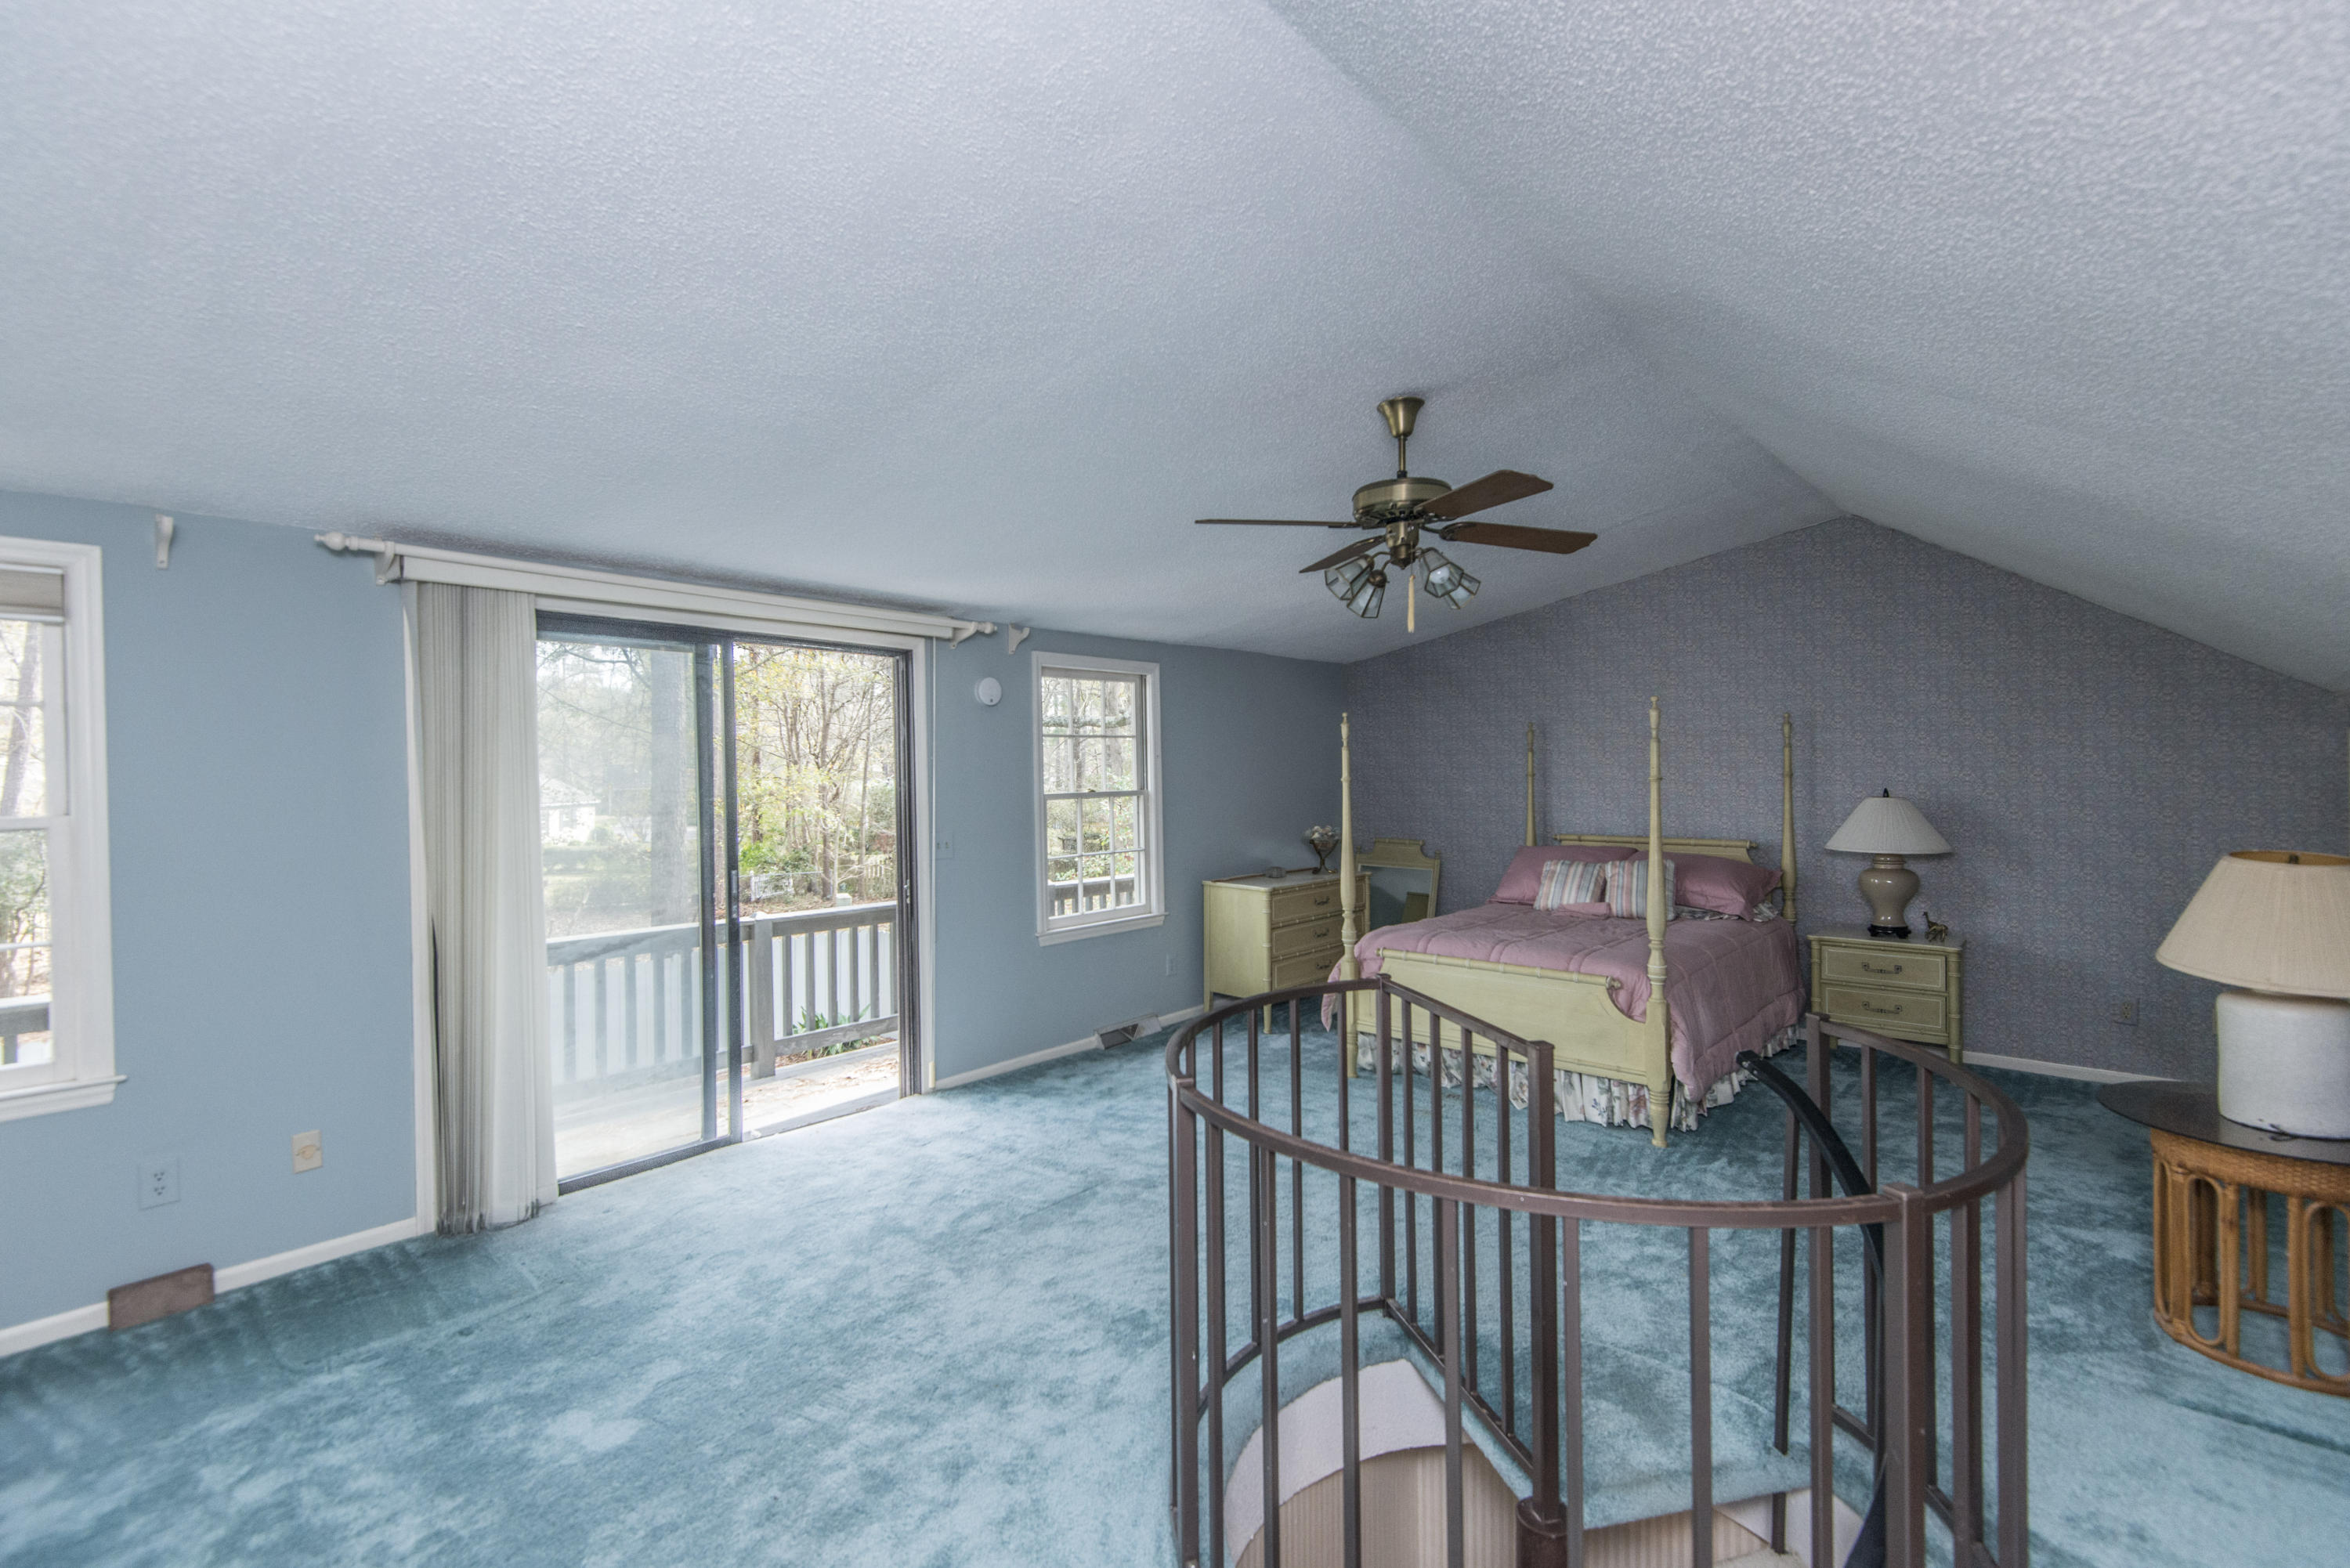 Kings Grant Homes For Sale - 102 Candlewood, Summerville, SC - 25